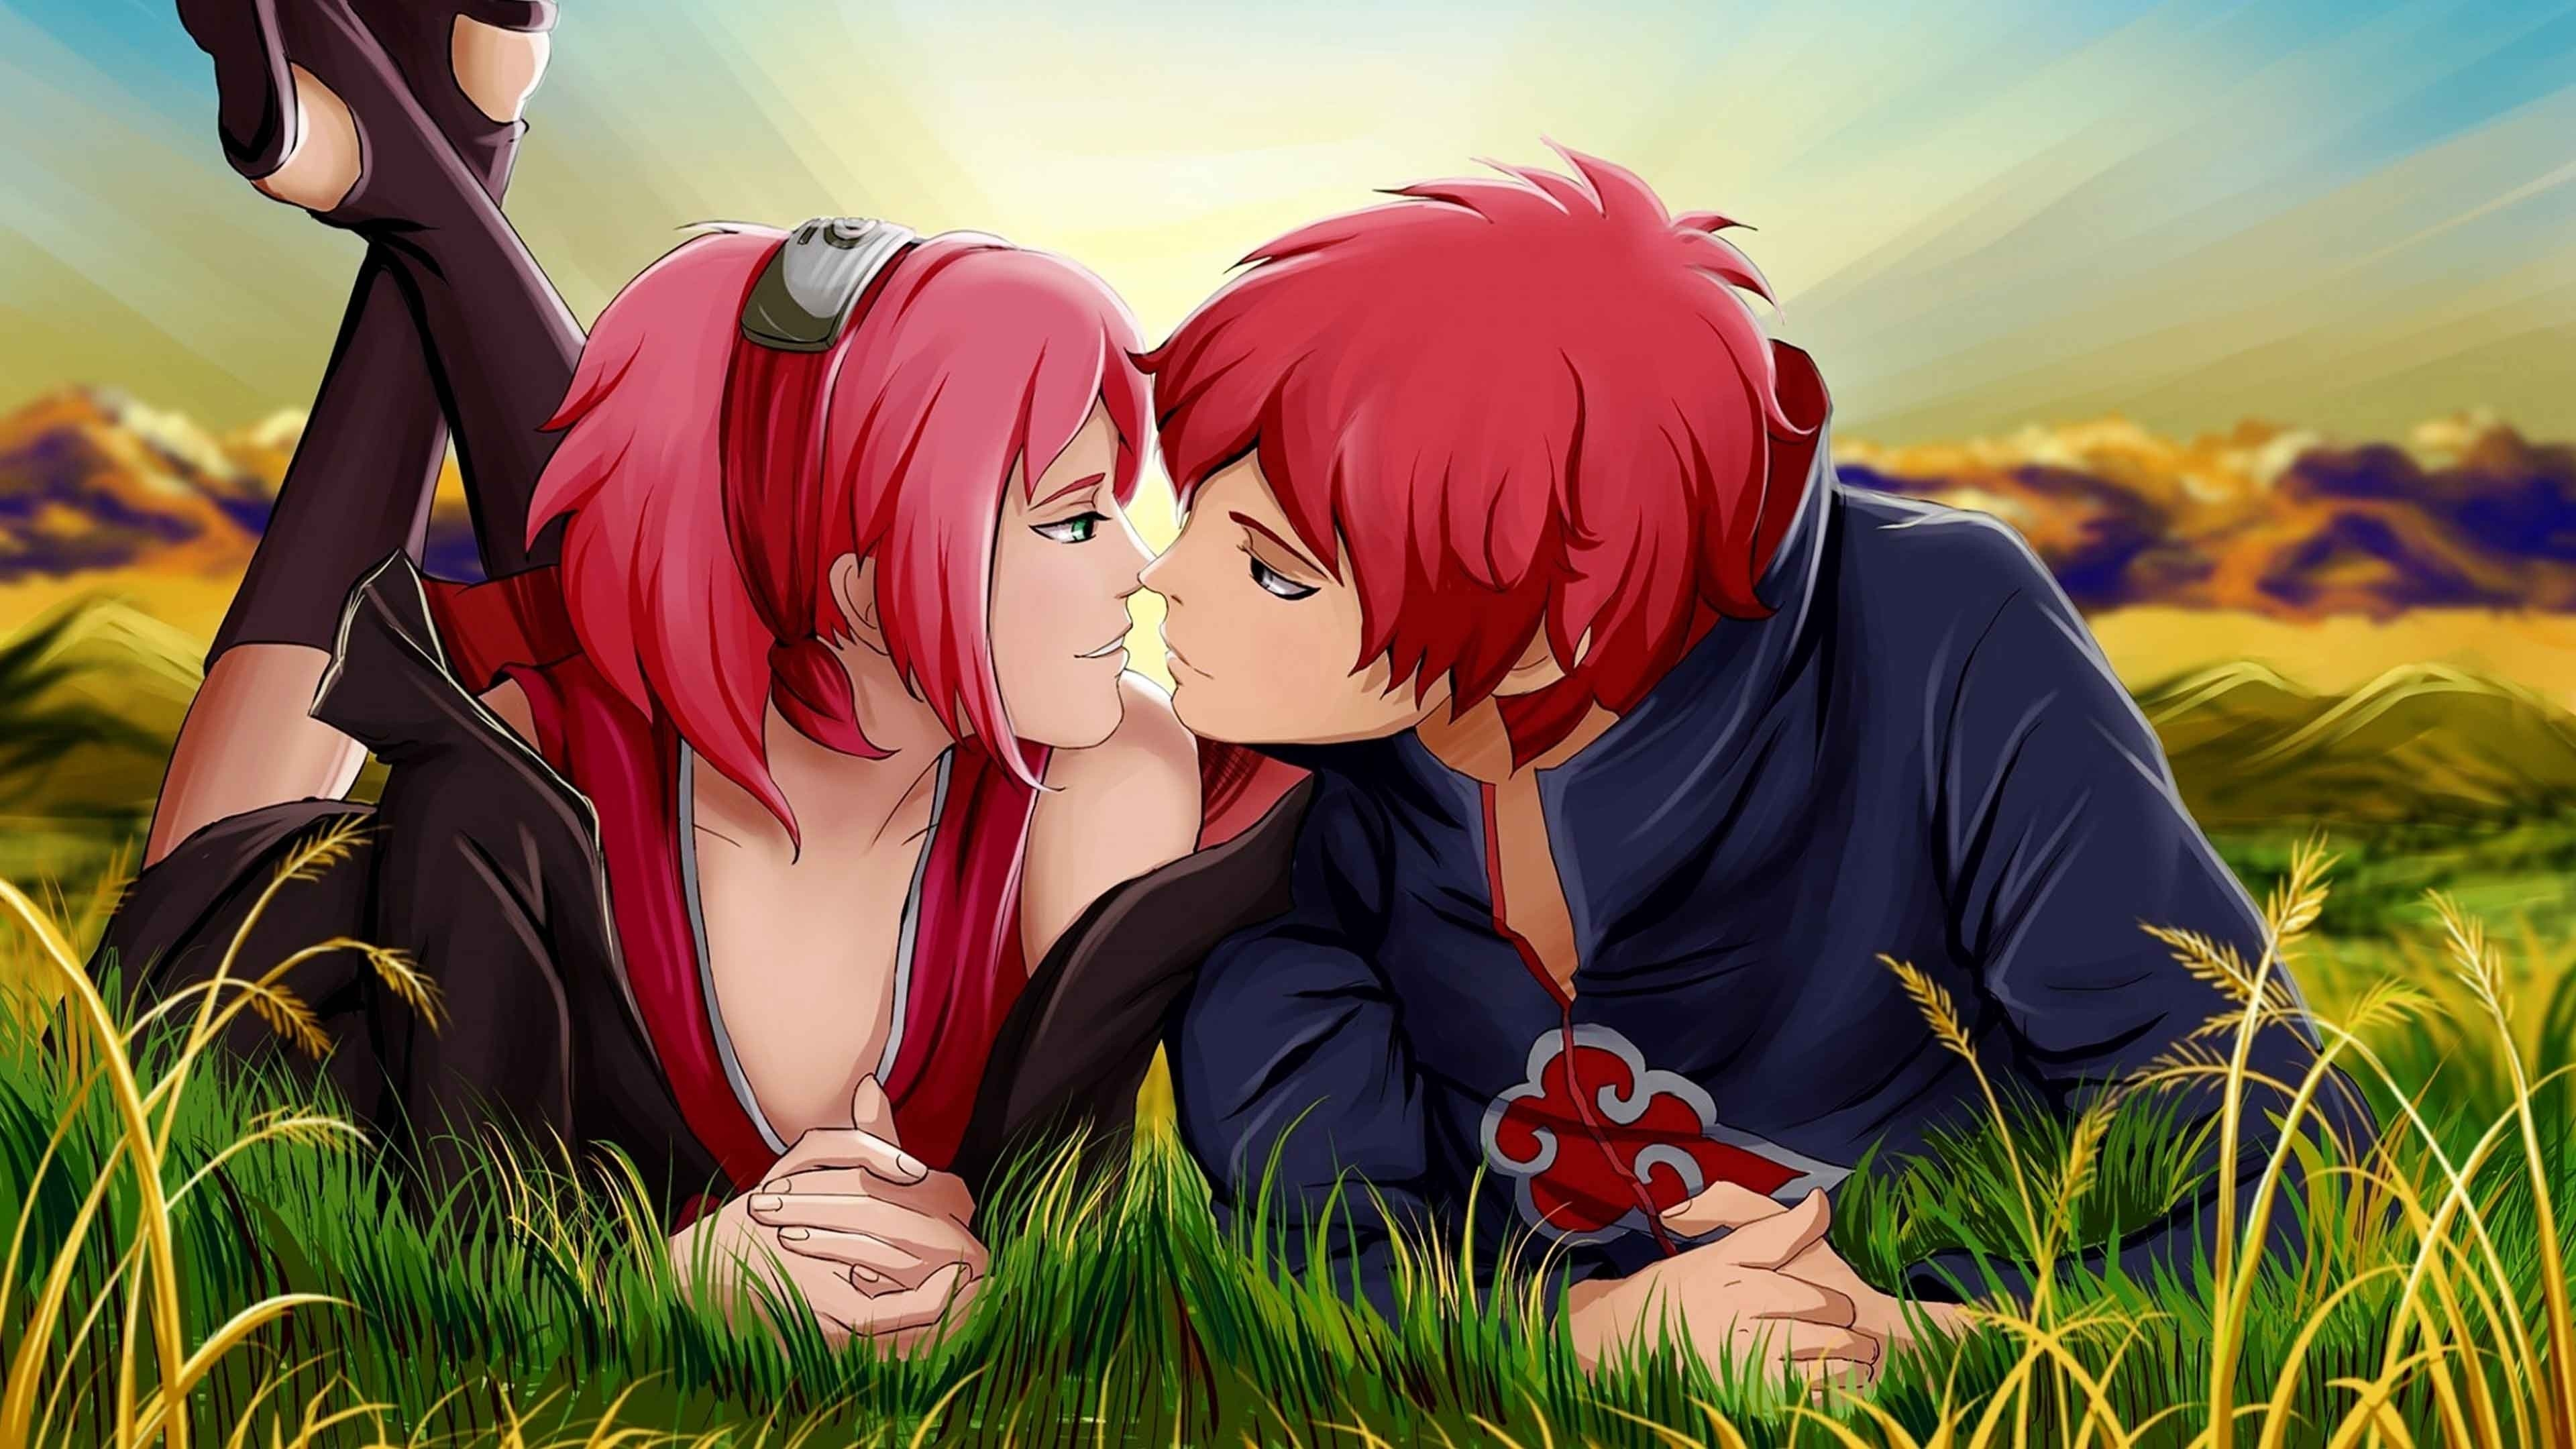 Popular Love Couple Cartoon HD Wallpaper Download - 936837-love-cartoon-wallpaper-3840x2160-for-macbook  2018_30991.jpg